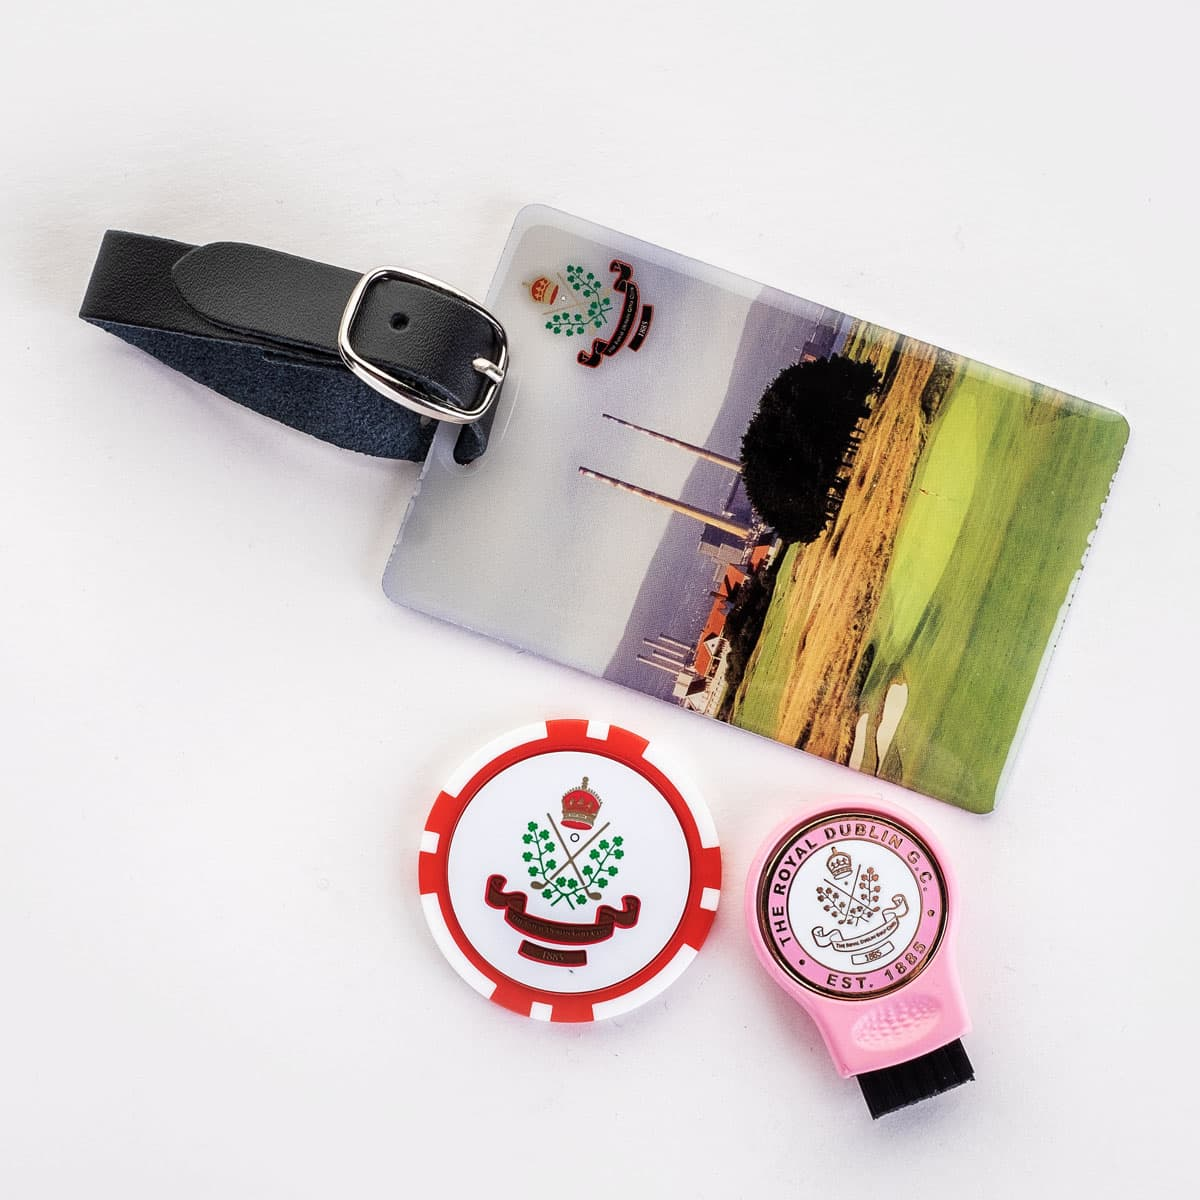 Bag tag, poker chip and groove brush combo set €15 or 2 for €25.